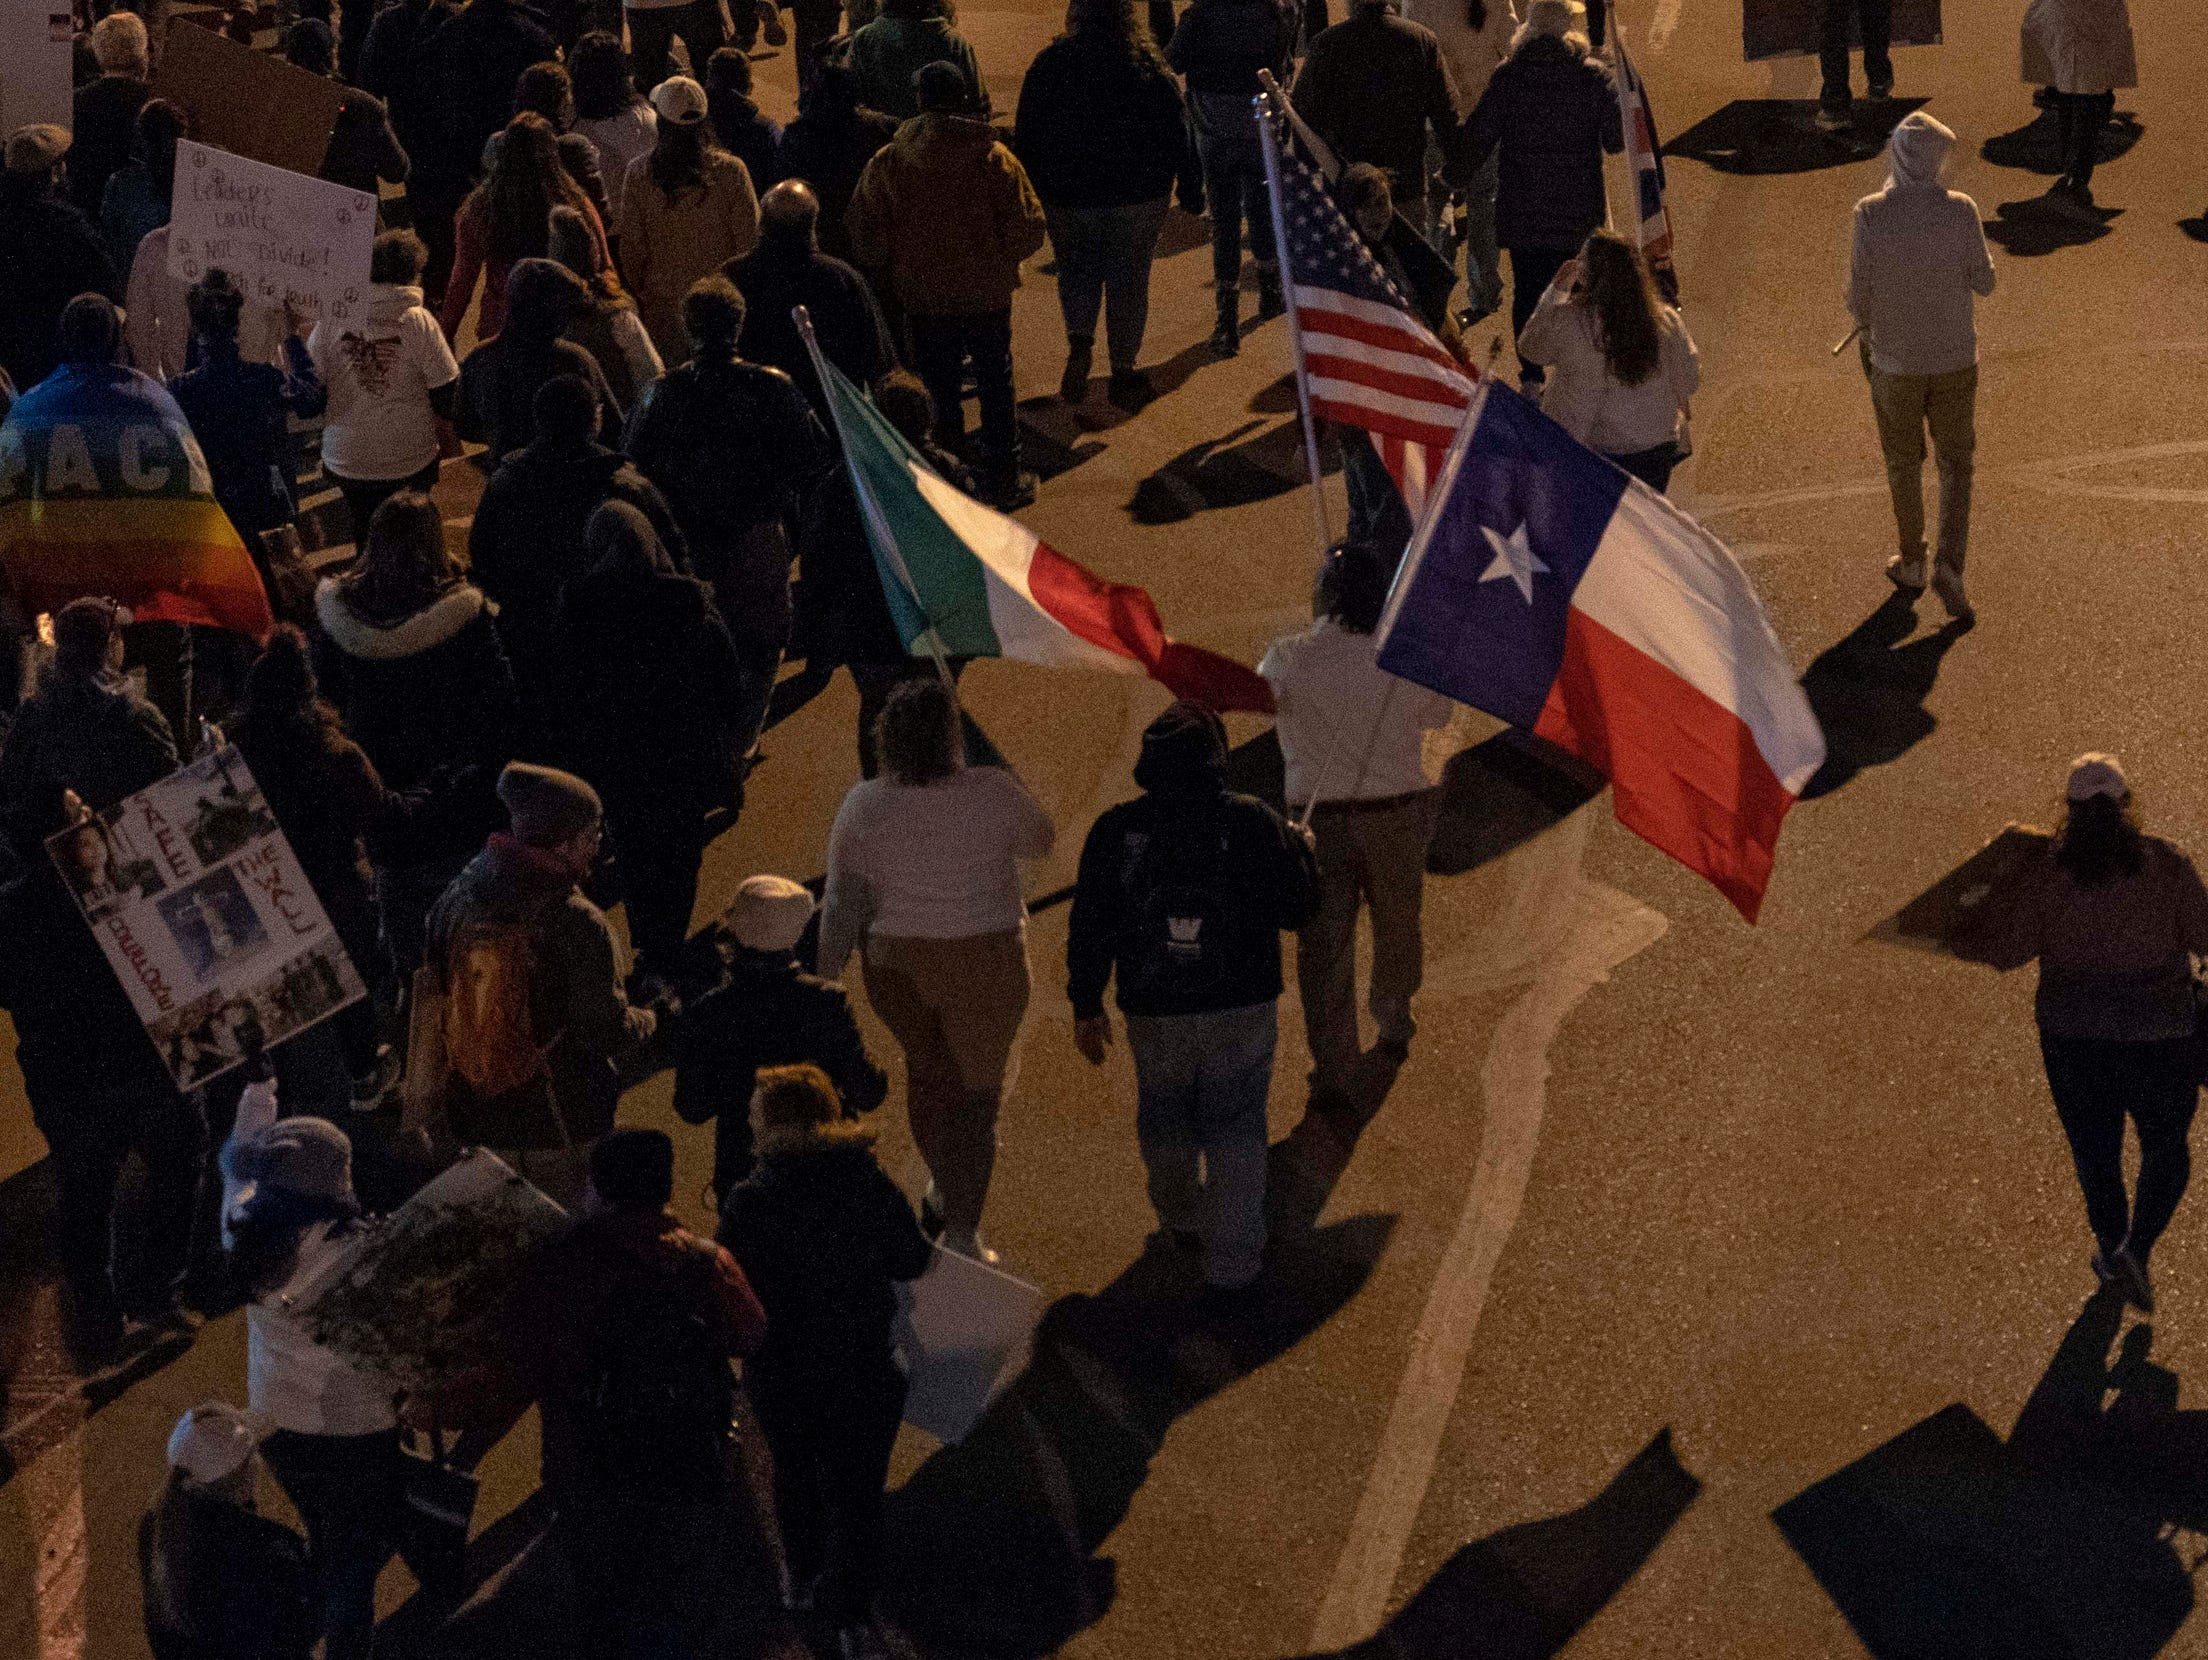 2/11/19 6:26:10 PM -- El Paso, TX, U.S.A  -- Hundreds joined the March for Truth along with Border Network for Human Rights, Women's March, to protest against President Trump campaign rally near El Paso County Coliseum on Feb. 11, 2019.